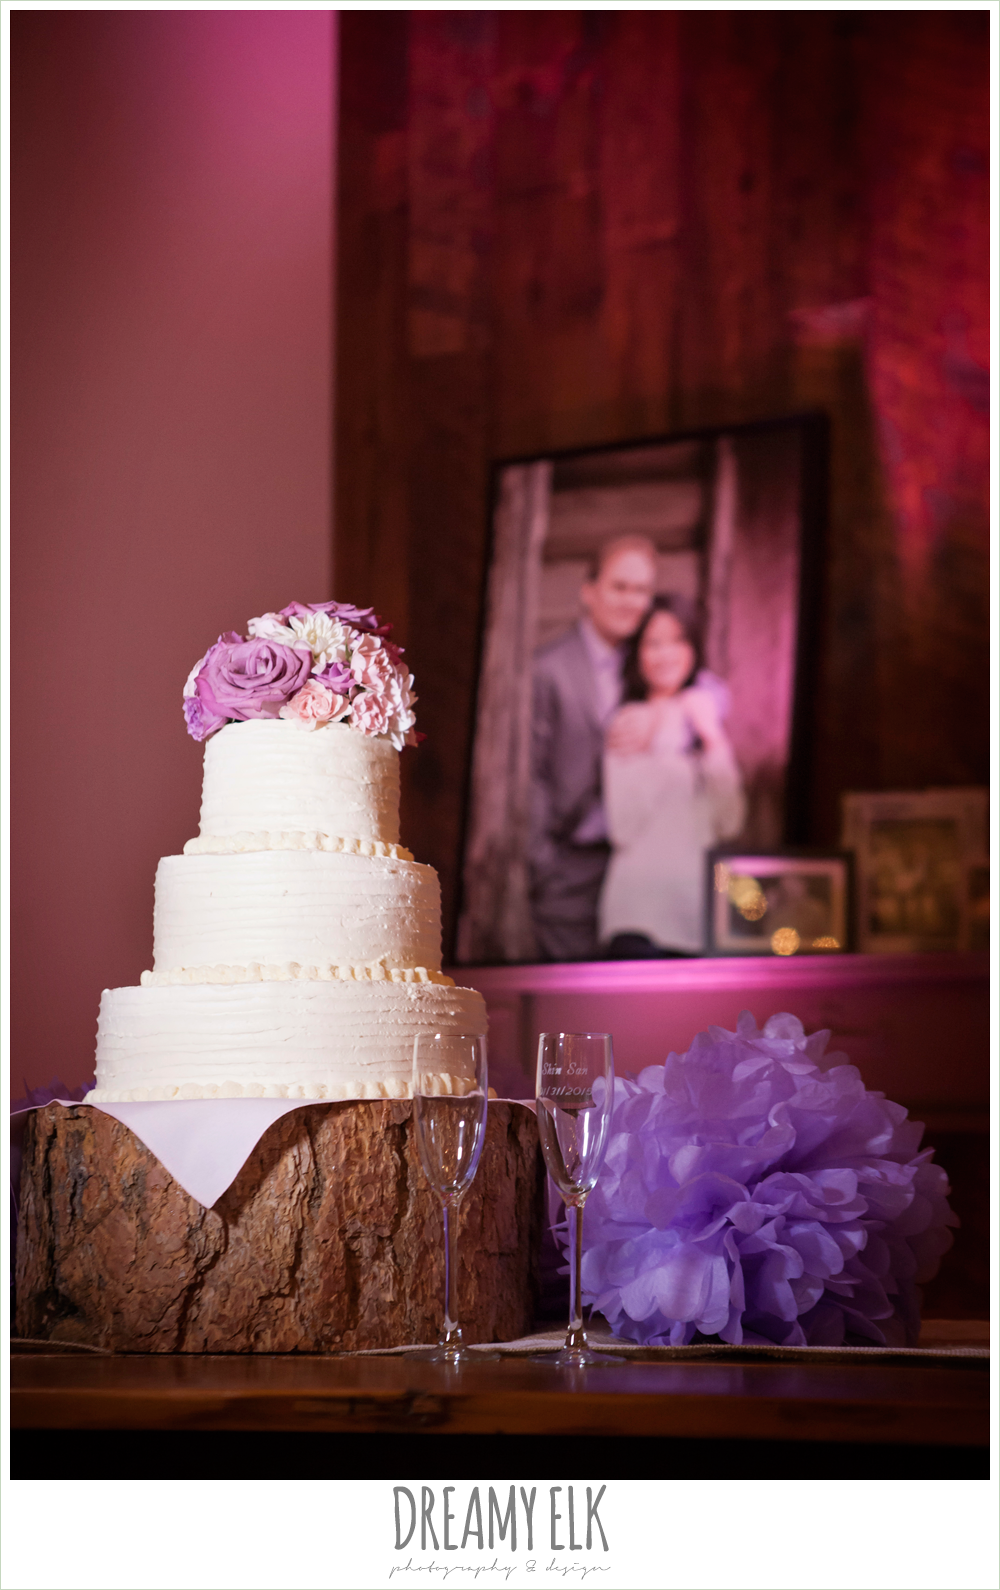 white round tier wedding cake, blush pink and purple flower cake topper, rustic chic wedding {dreamy elk photography and design}